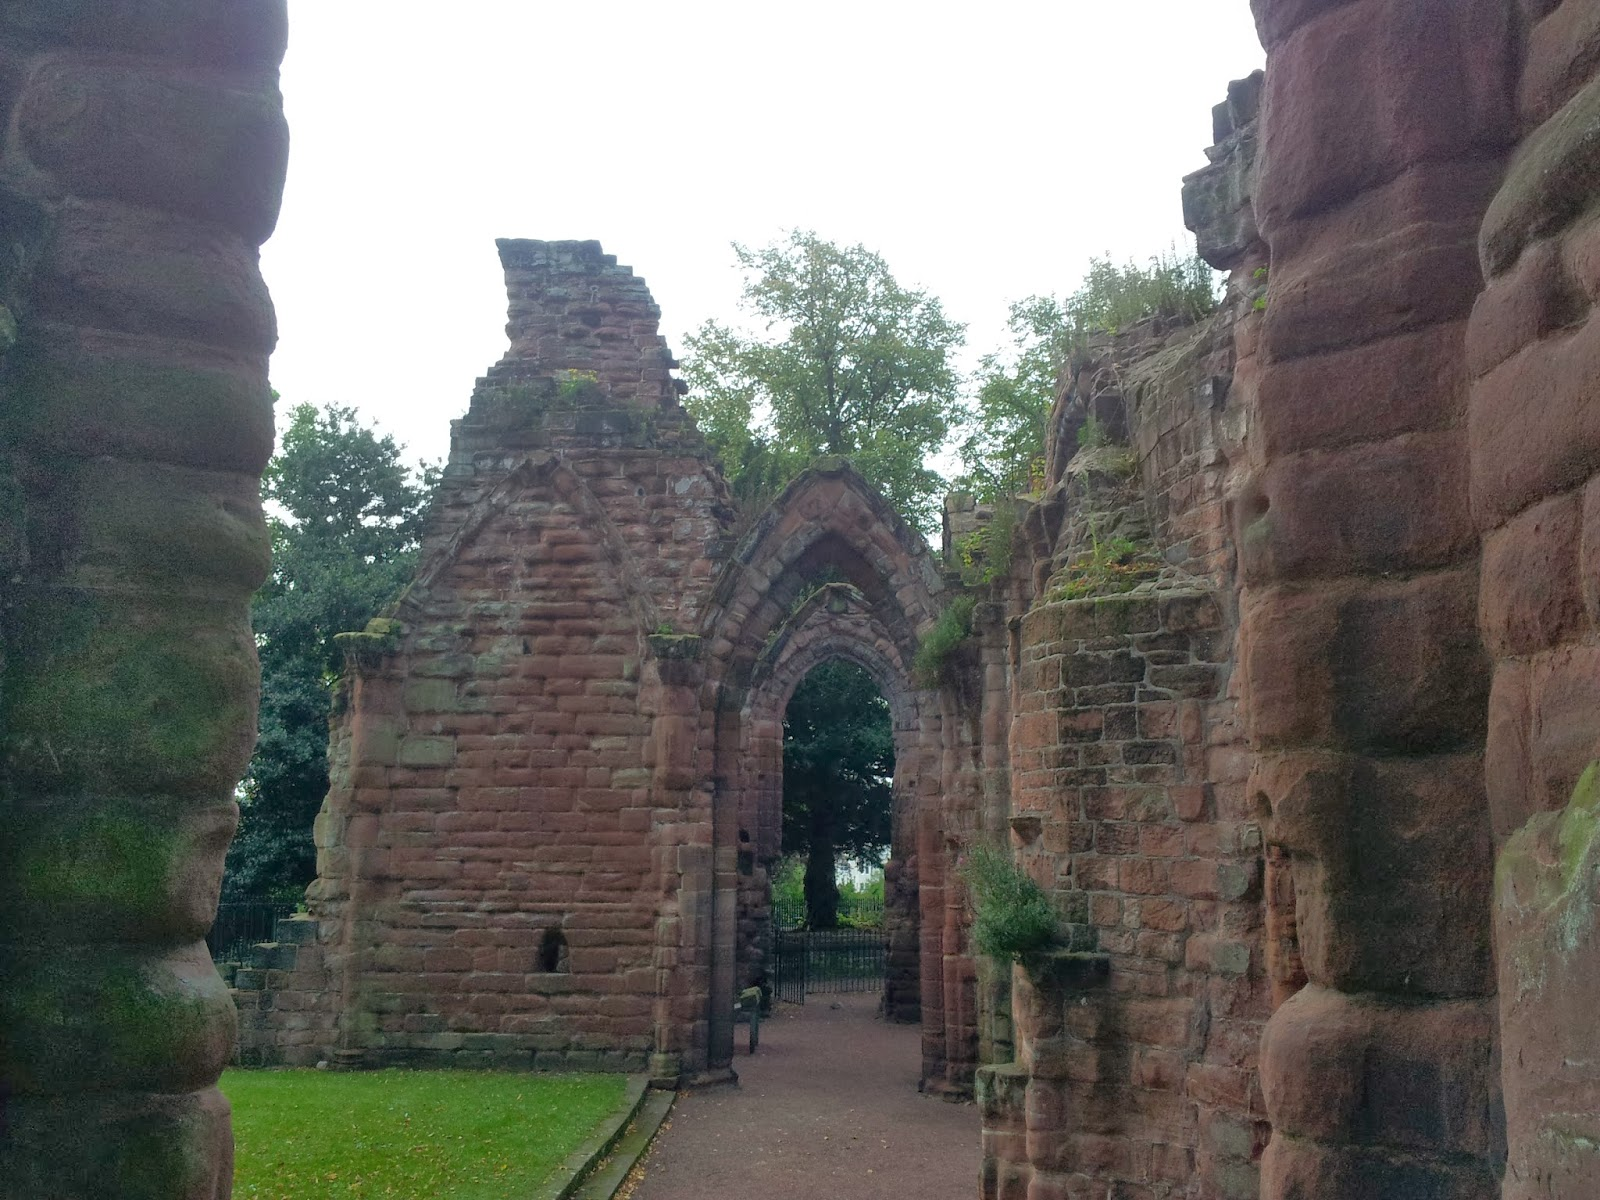 Ruinds of St John's church, Chester, England